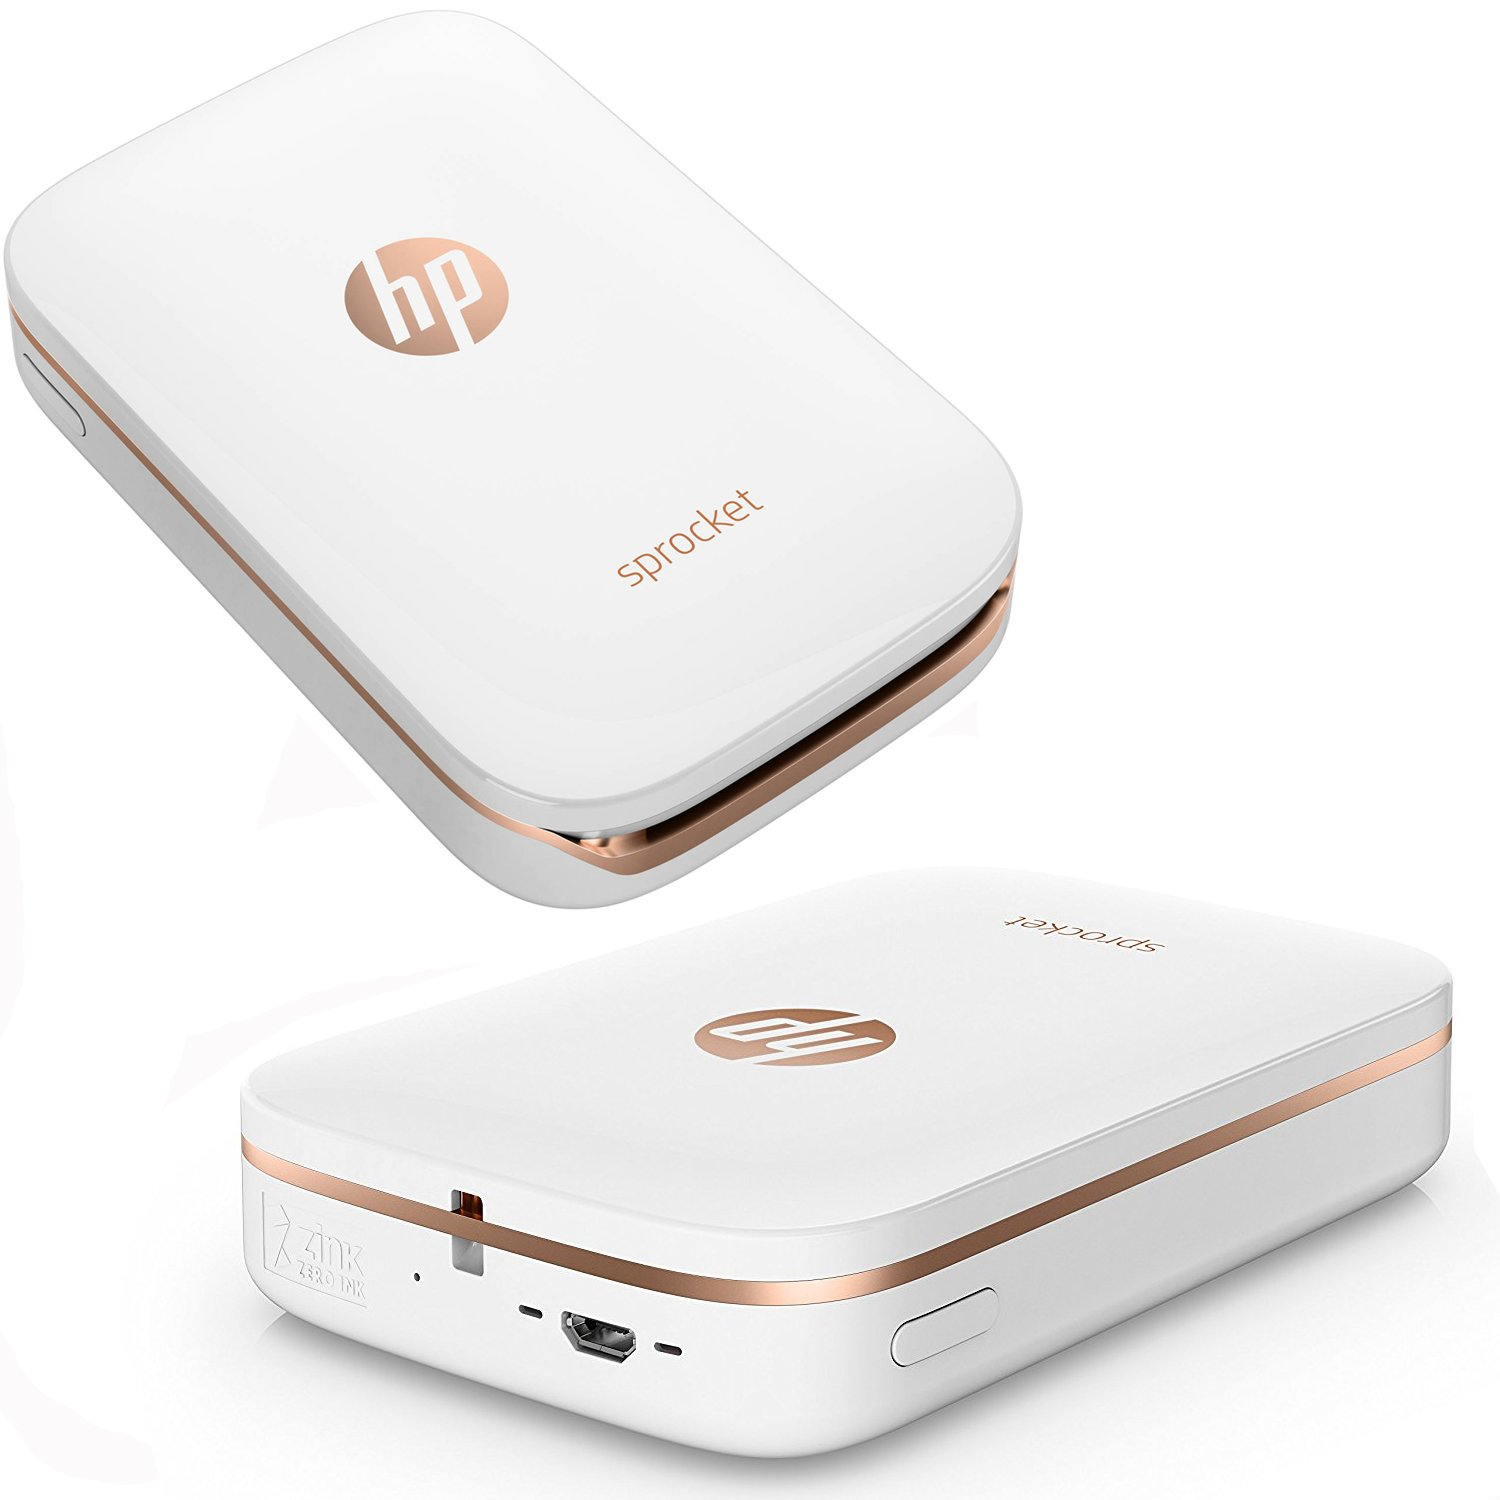 HP Sprocket Photo Printer, Print Social Media Photos on 2x3 Sticky-Backed Paper (White) + Photo Paper (60 Sheets) + Protective Case + USB Cable + ...